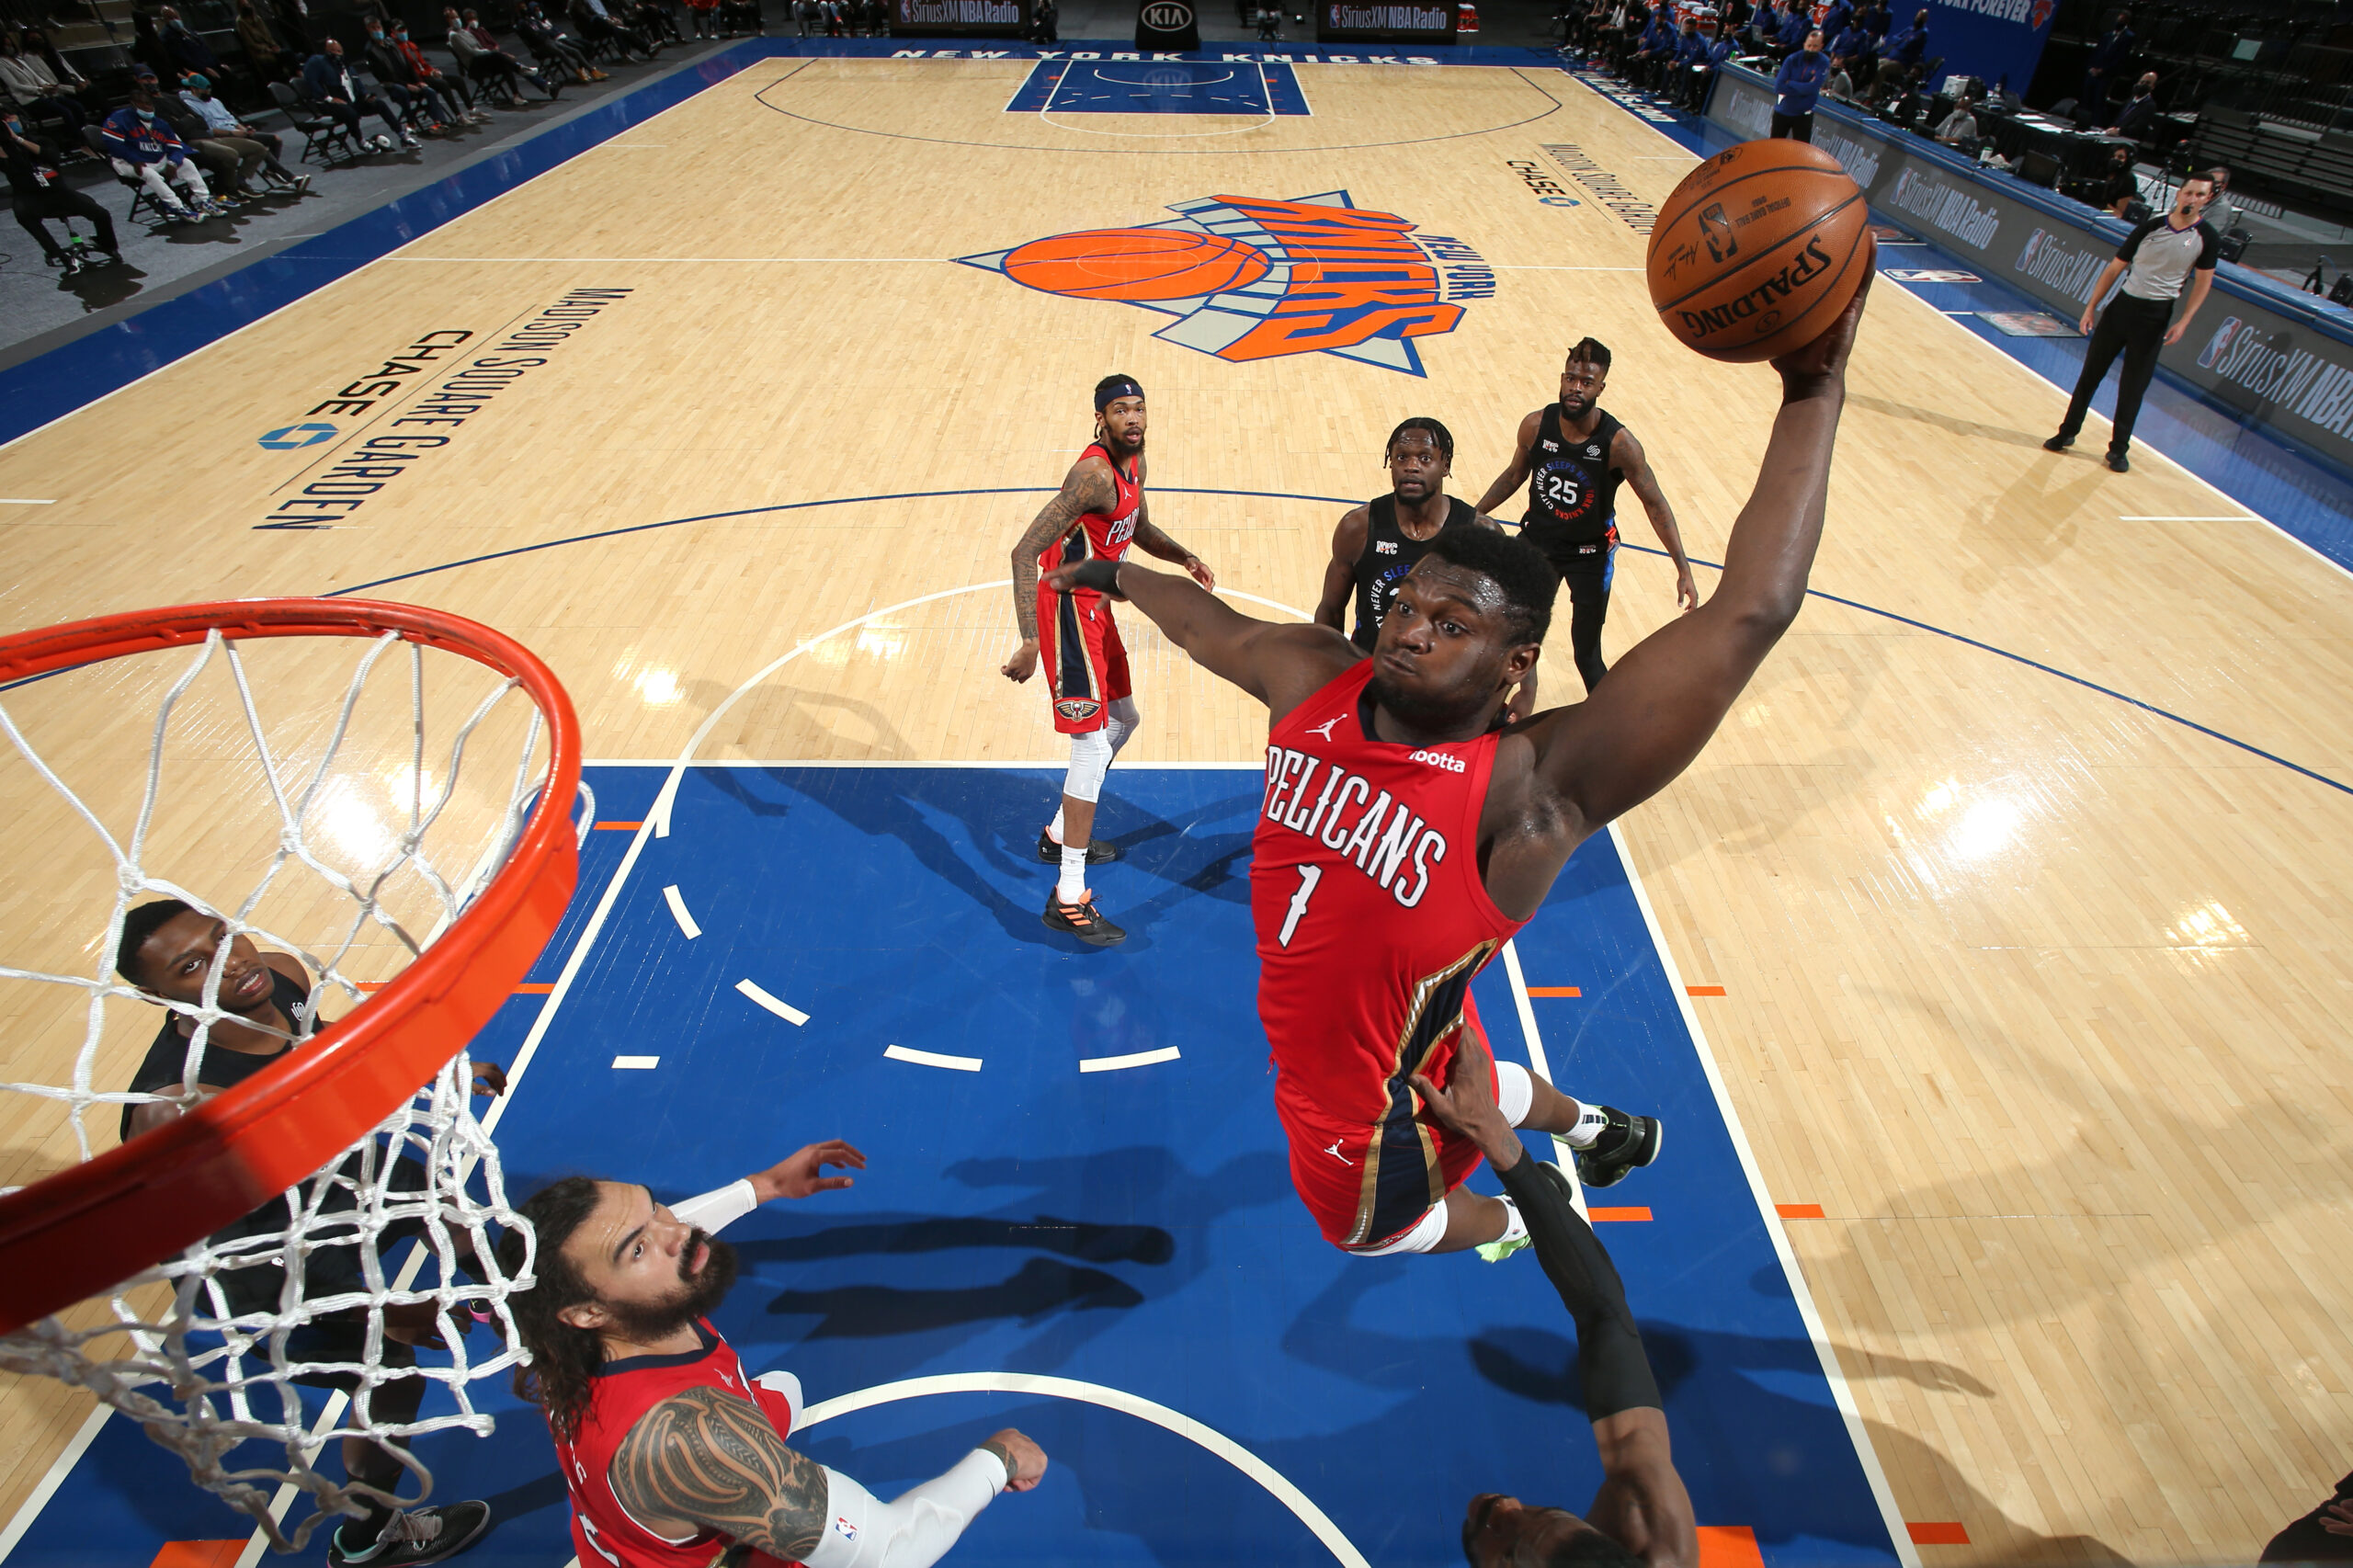 Zion, Pelicans visit MSG as Knicks eye 6th straight win